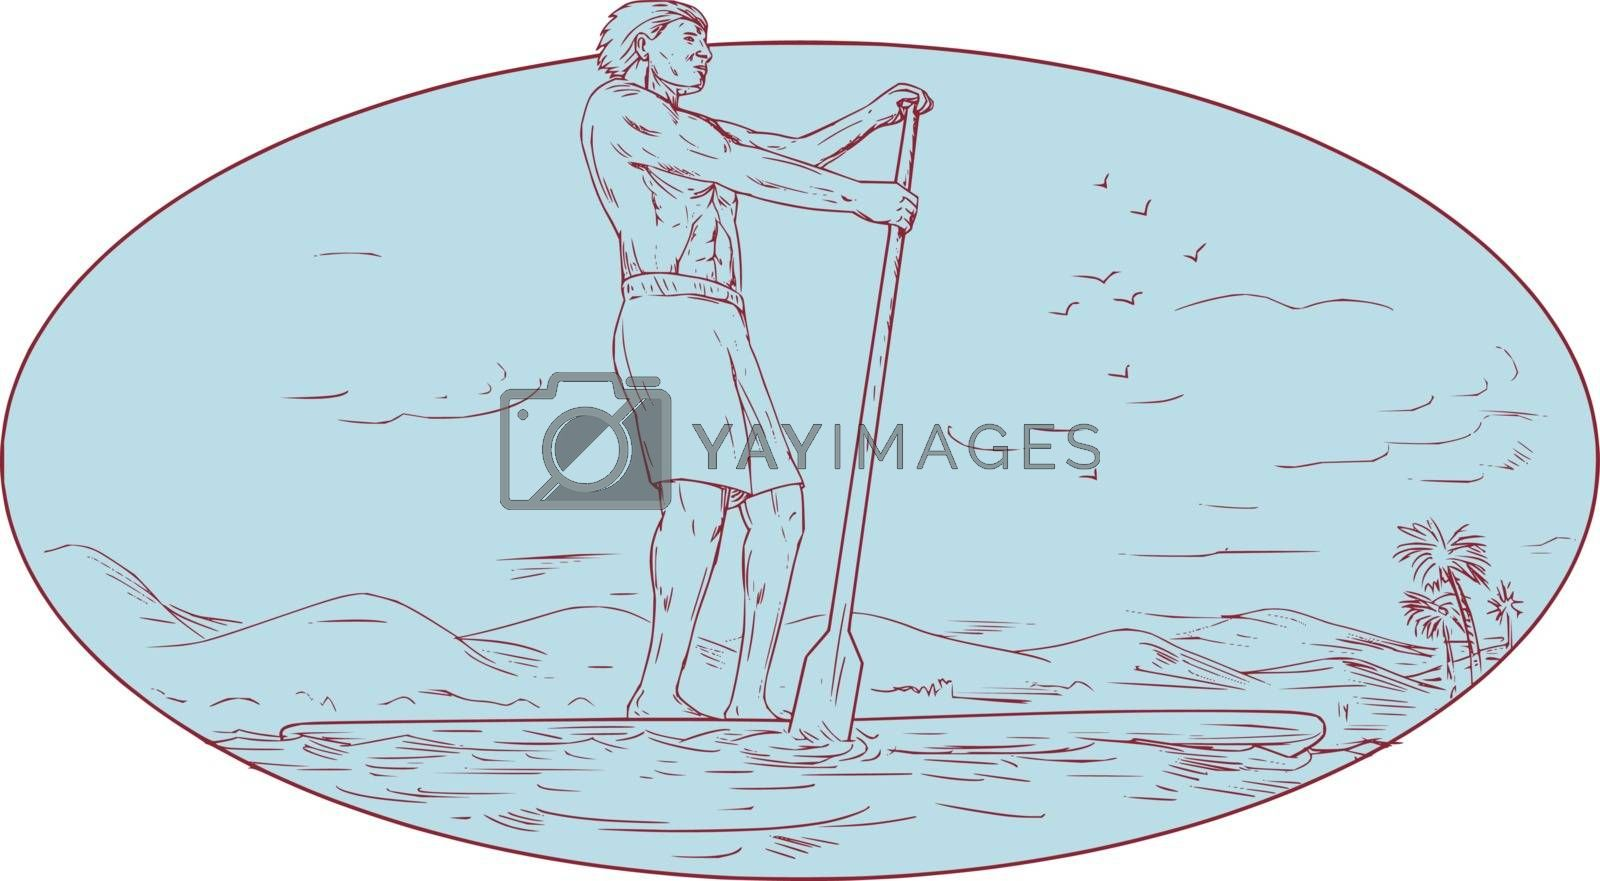 Drawing sketch style illustration of a guy on a stand up paddle board paddle boarding holding paddling oar with tropical island in the background done set inside oval shape.